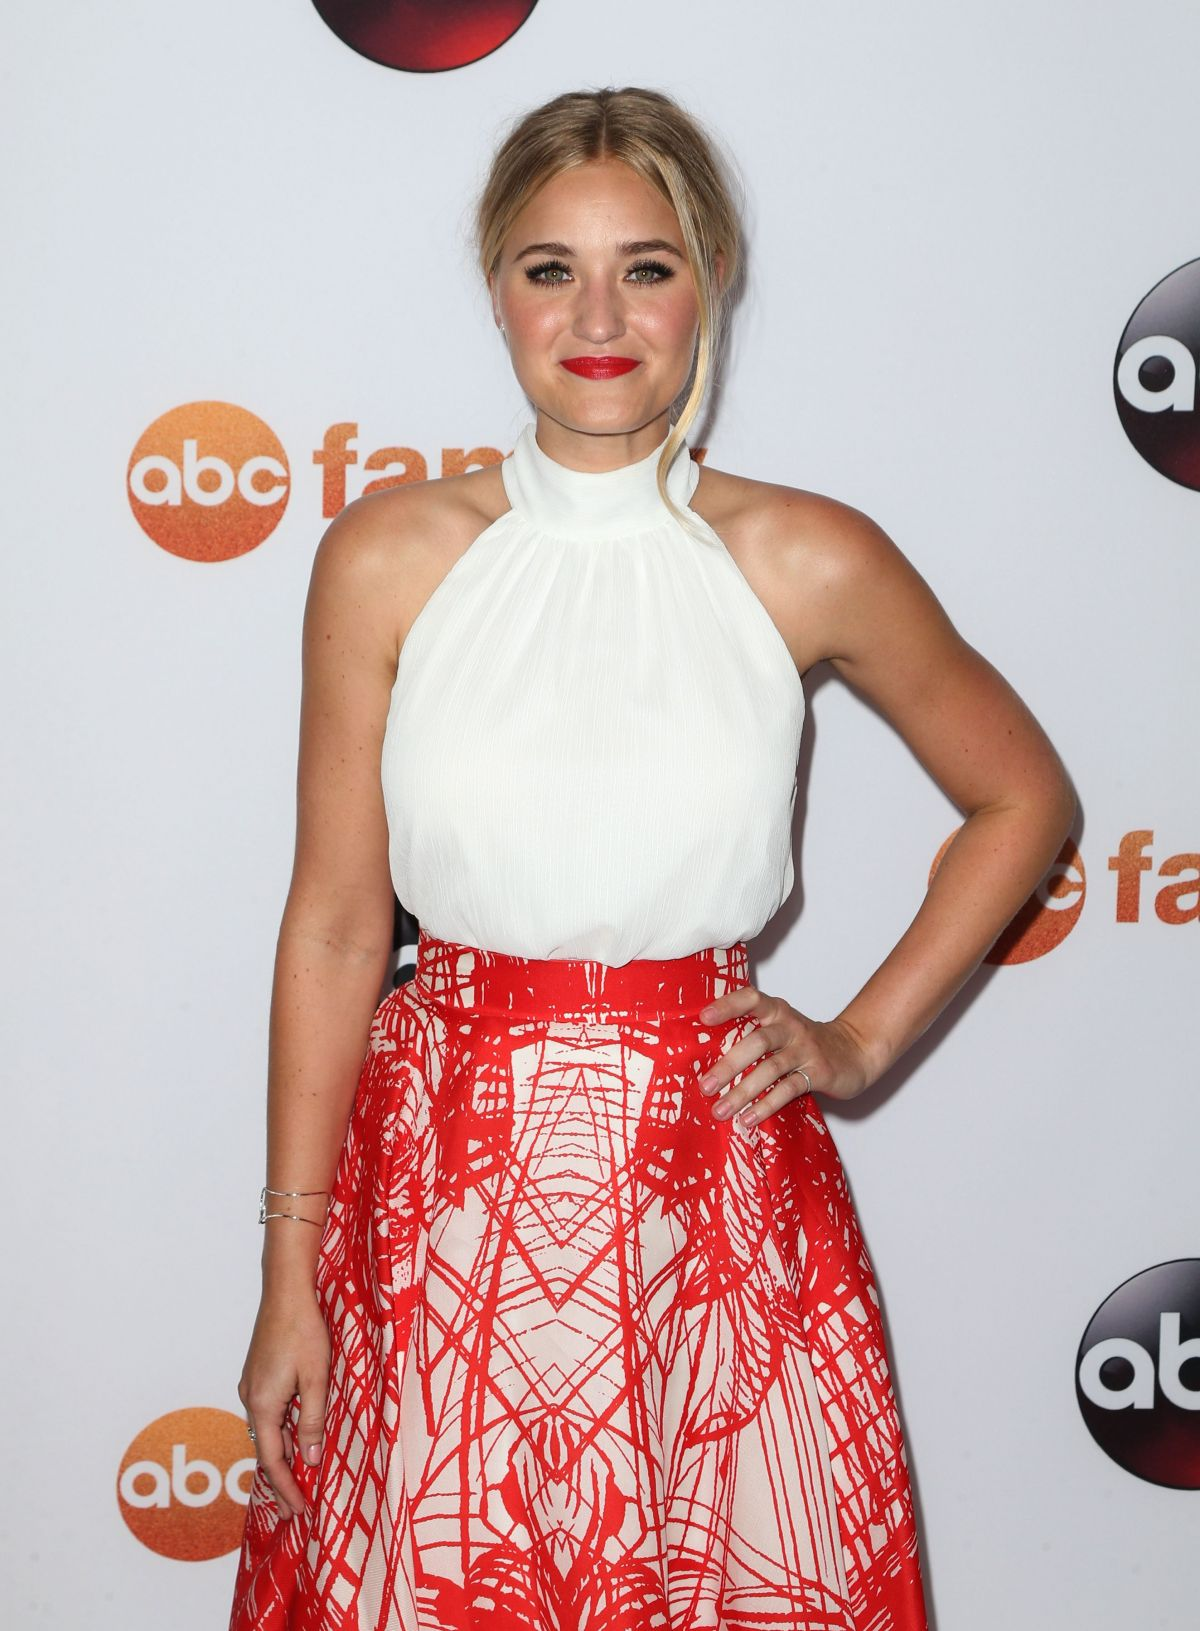 AMANDA AJ MICHALKA at Disney ABC 2015 Summer TCA Tour in Beverly Hills